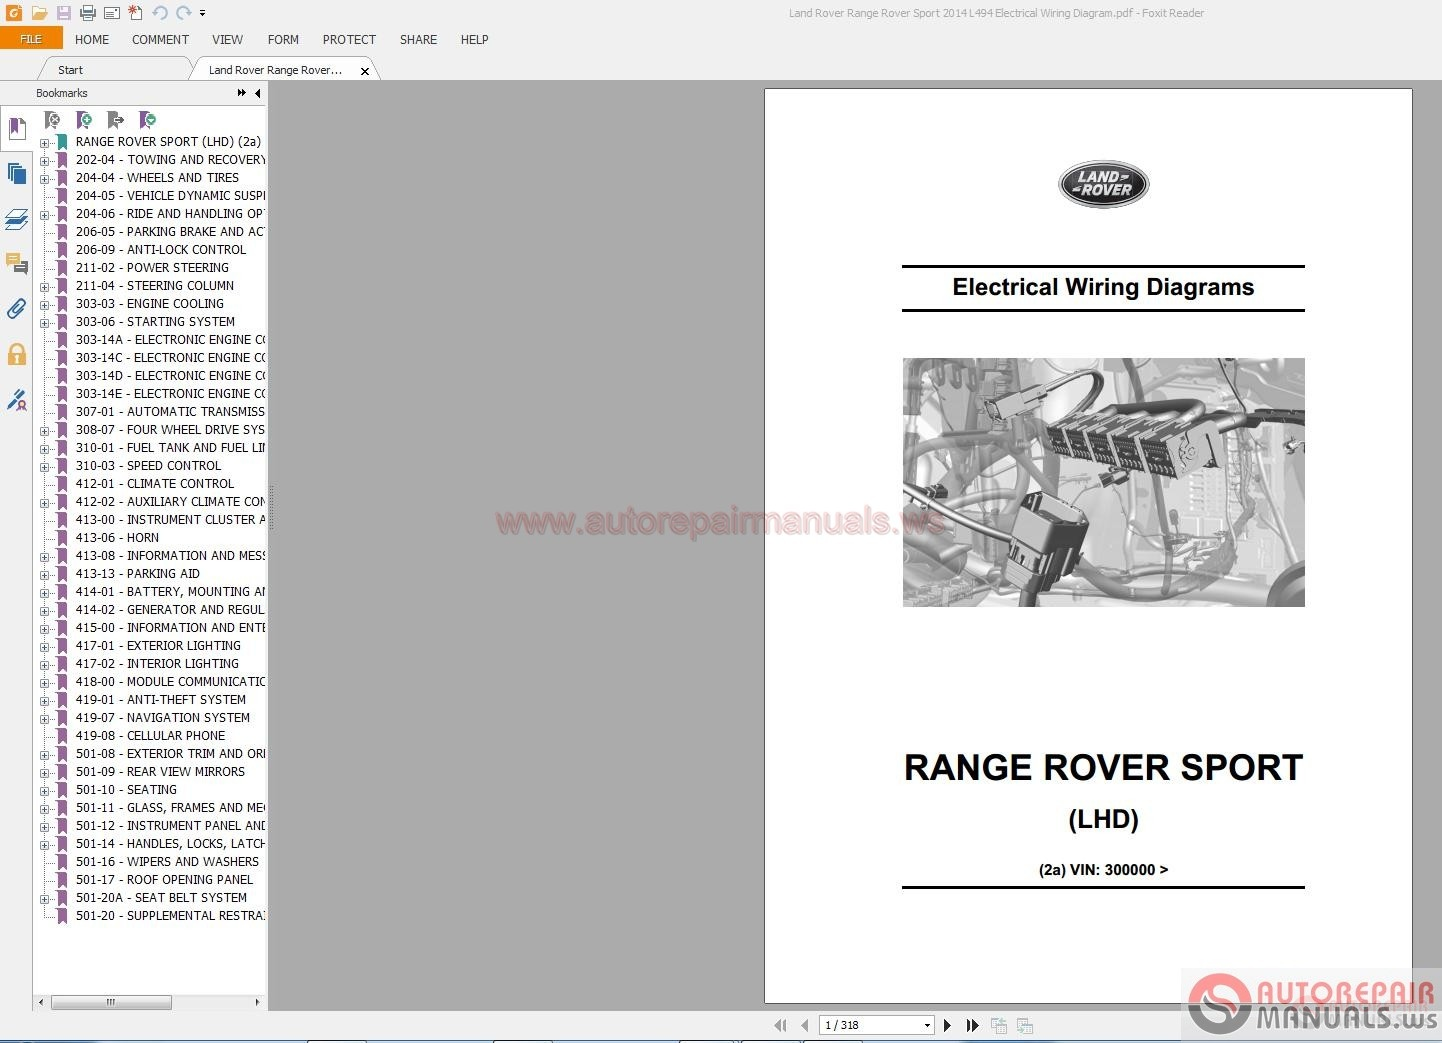 hight resolution of land rover range rover sport 2014 l494 electrical wiring diagram land rover range rover sport 2014 l494 electrical wiring diagram range rover